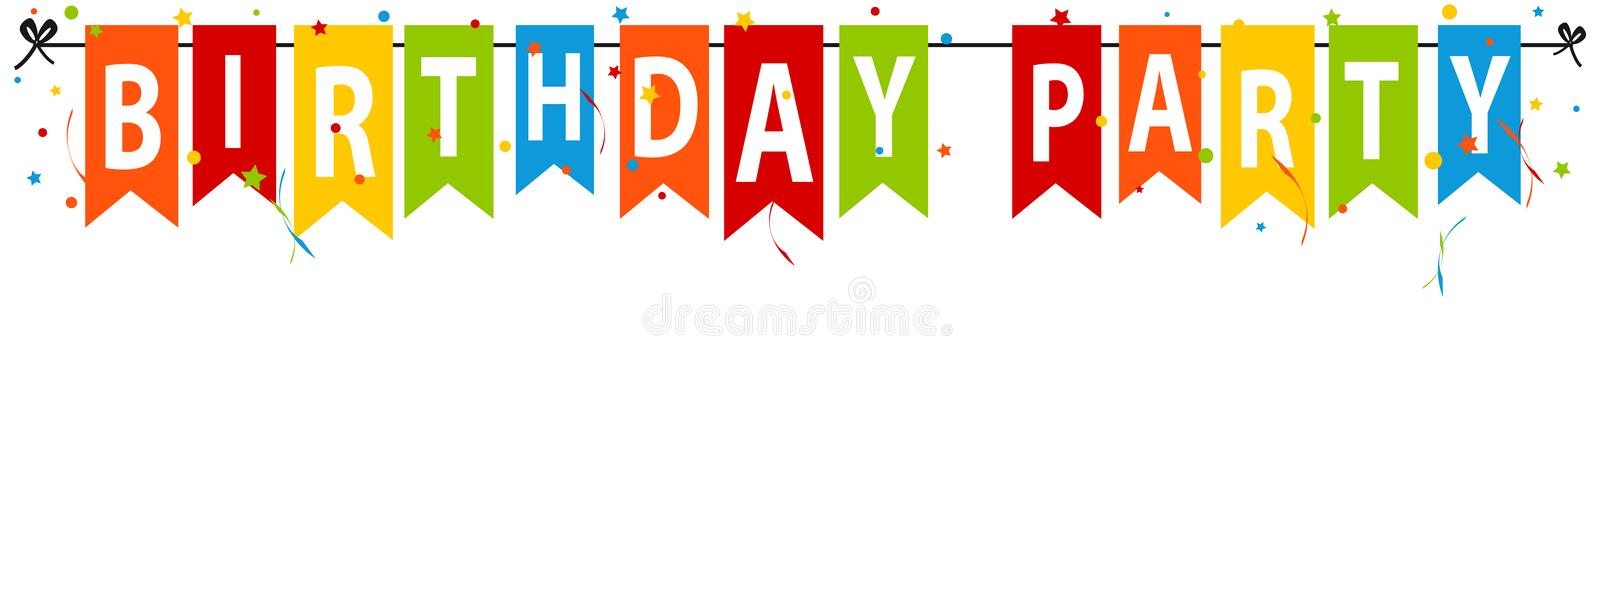 Birthday Party Flags With Confetti And Streamers - Colorful Vector Illustration - Isolated On White Background vector illustration